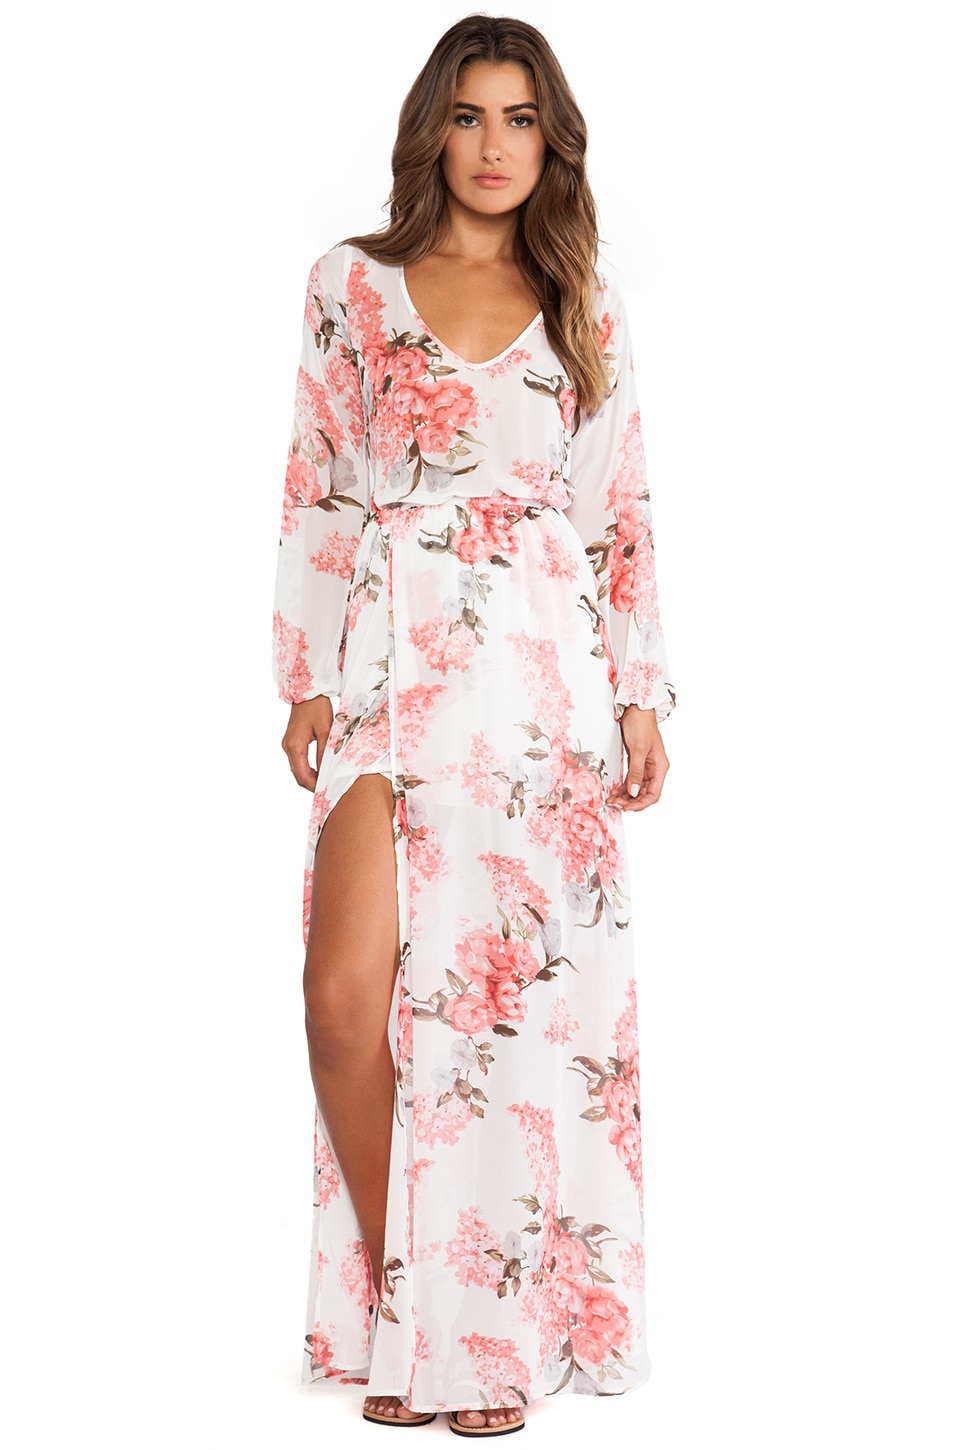 436010cd05f3f Show Me Your Mumu Jocelyn Maxi Dress in Blossom Blush | REVOLVE